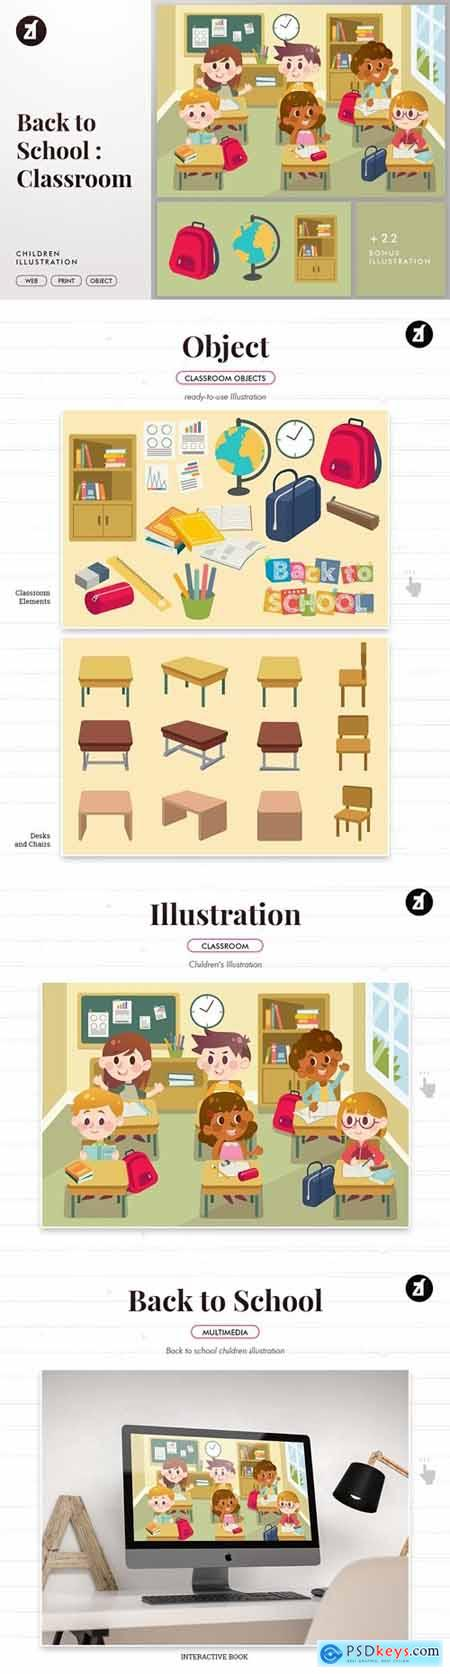 Back to school classroom illustration with objects